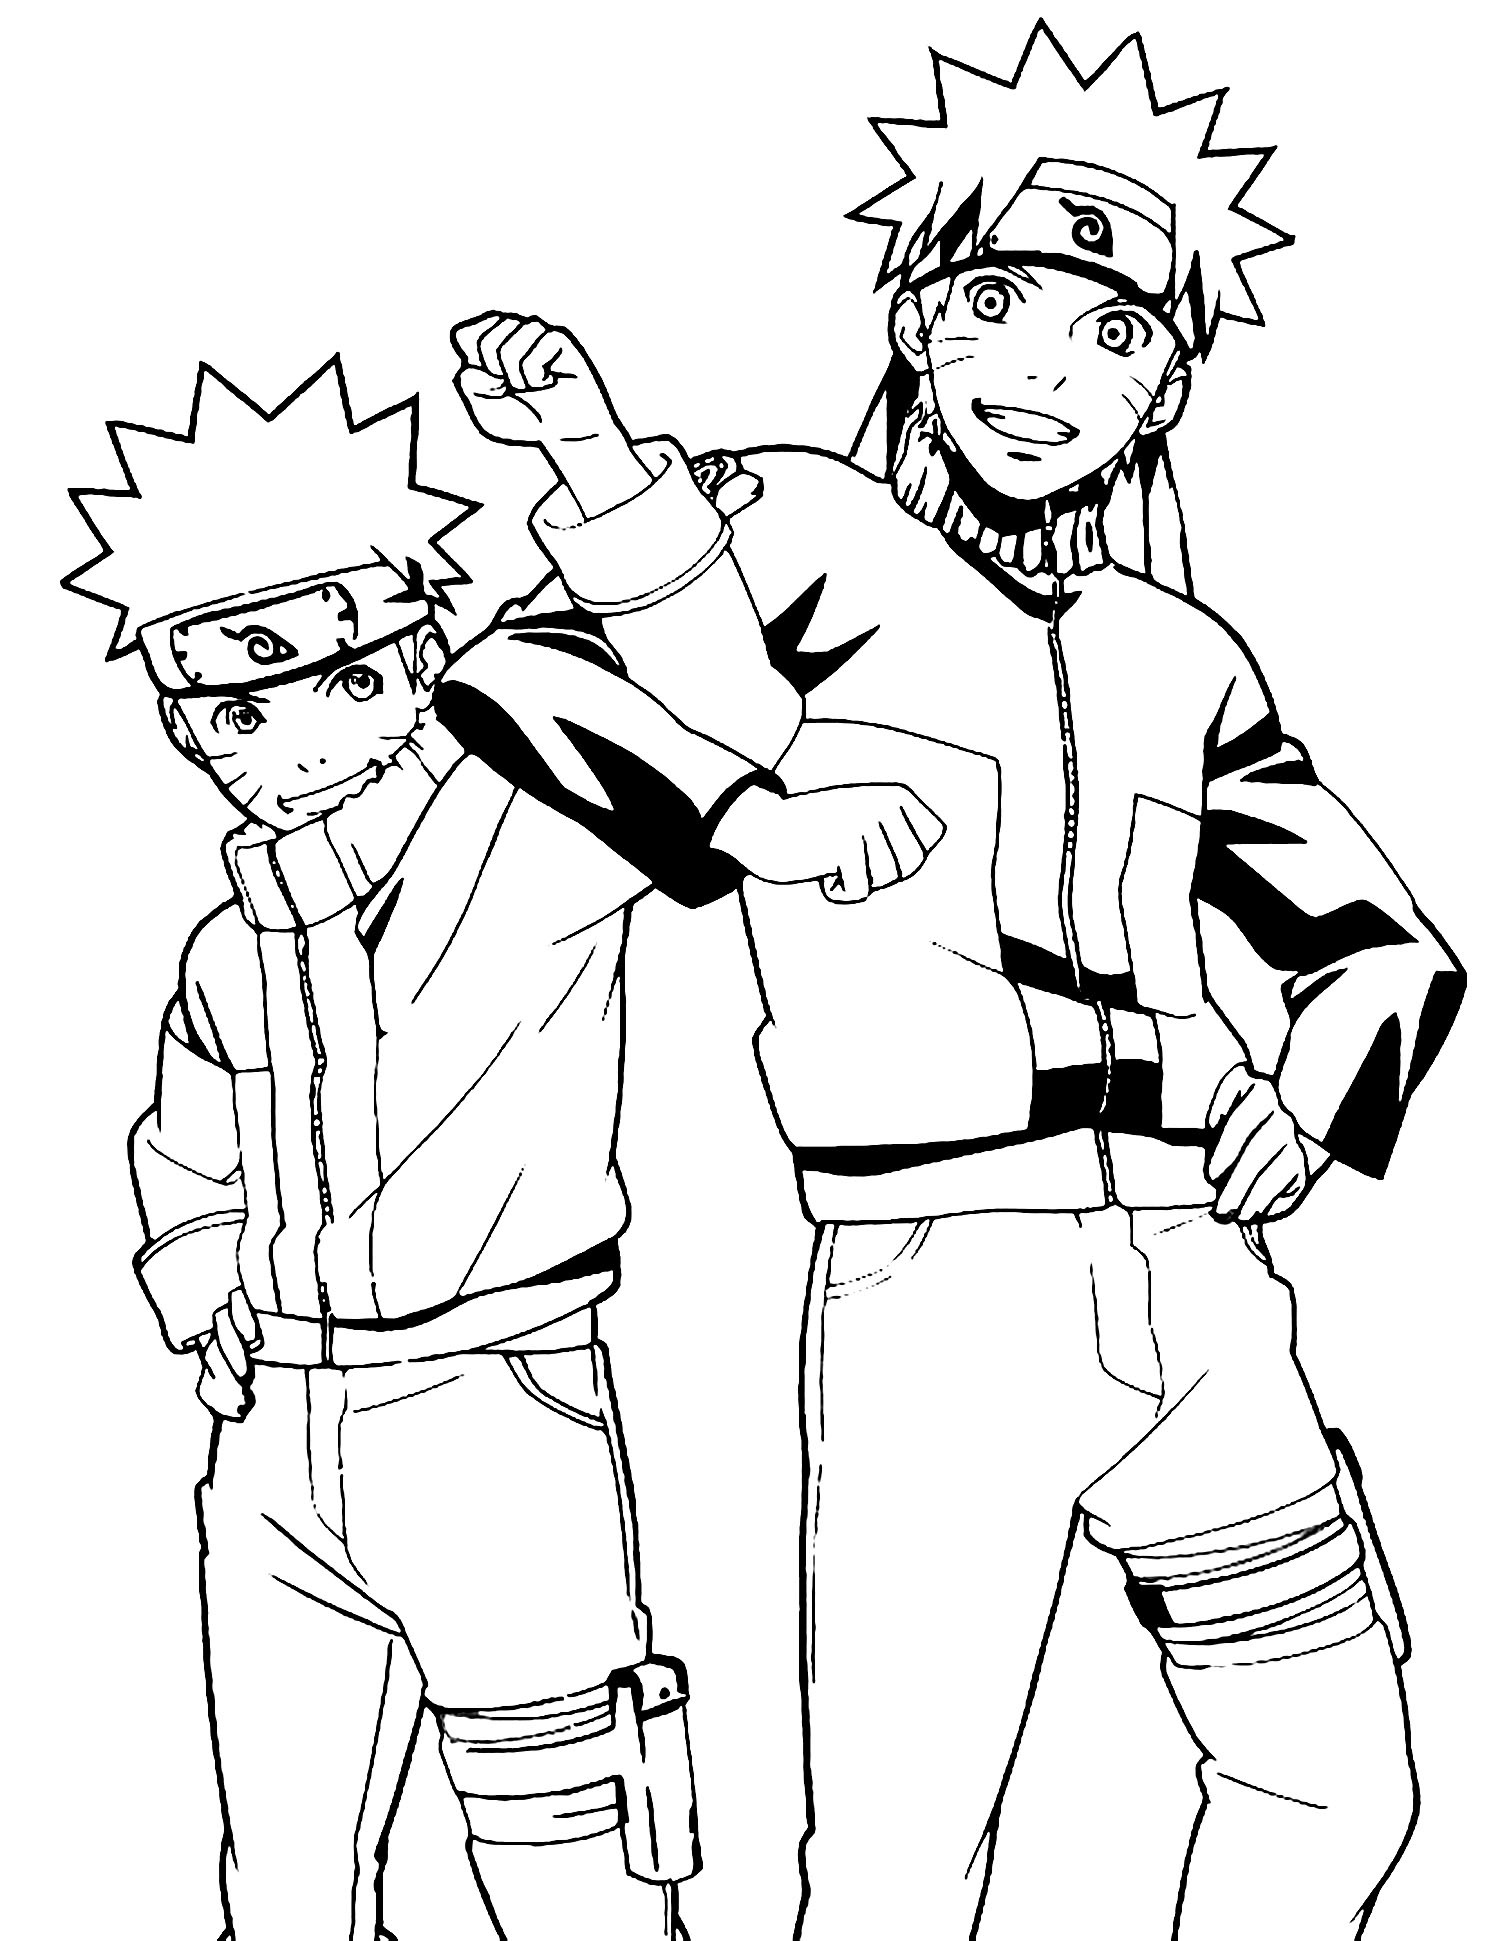 Naruto to color for children - Naruto Kids Coloring Pages